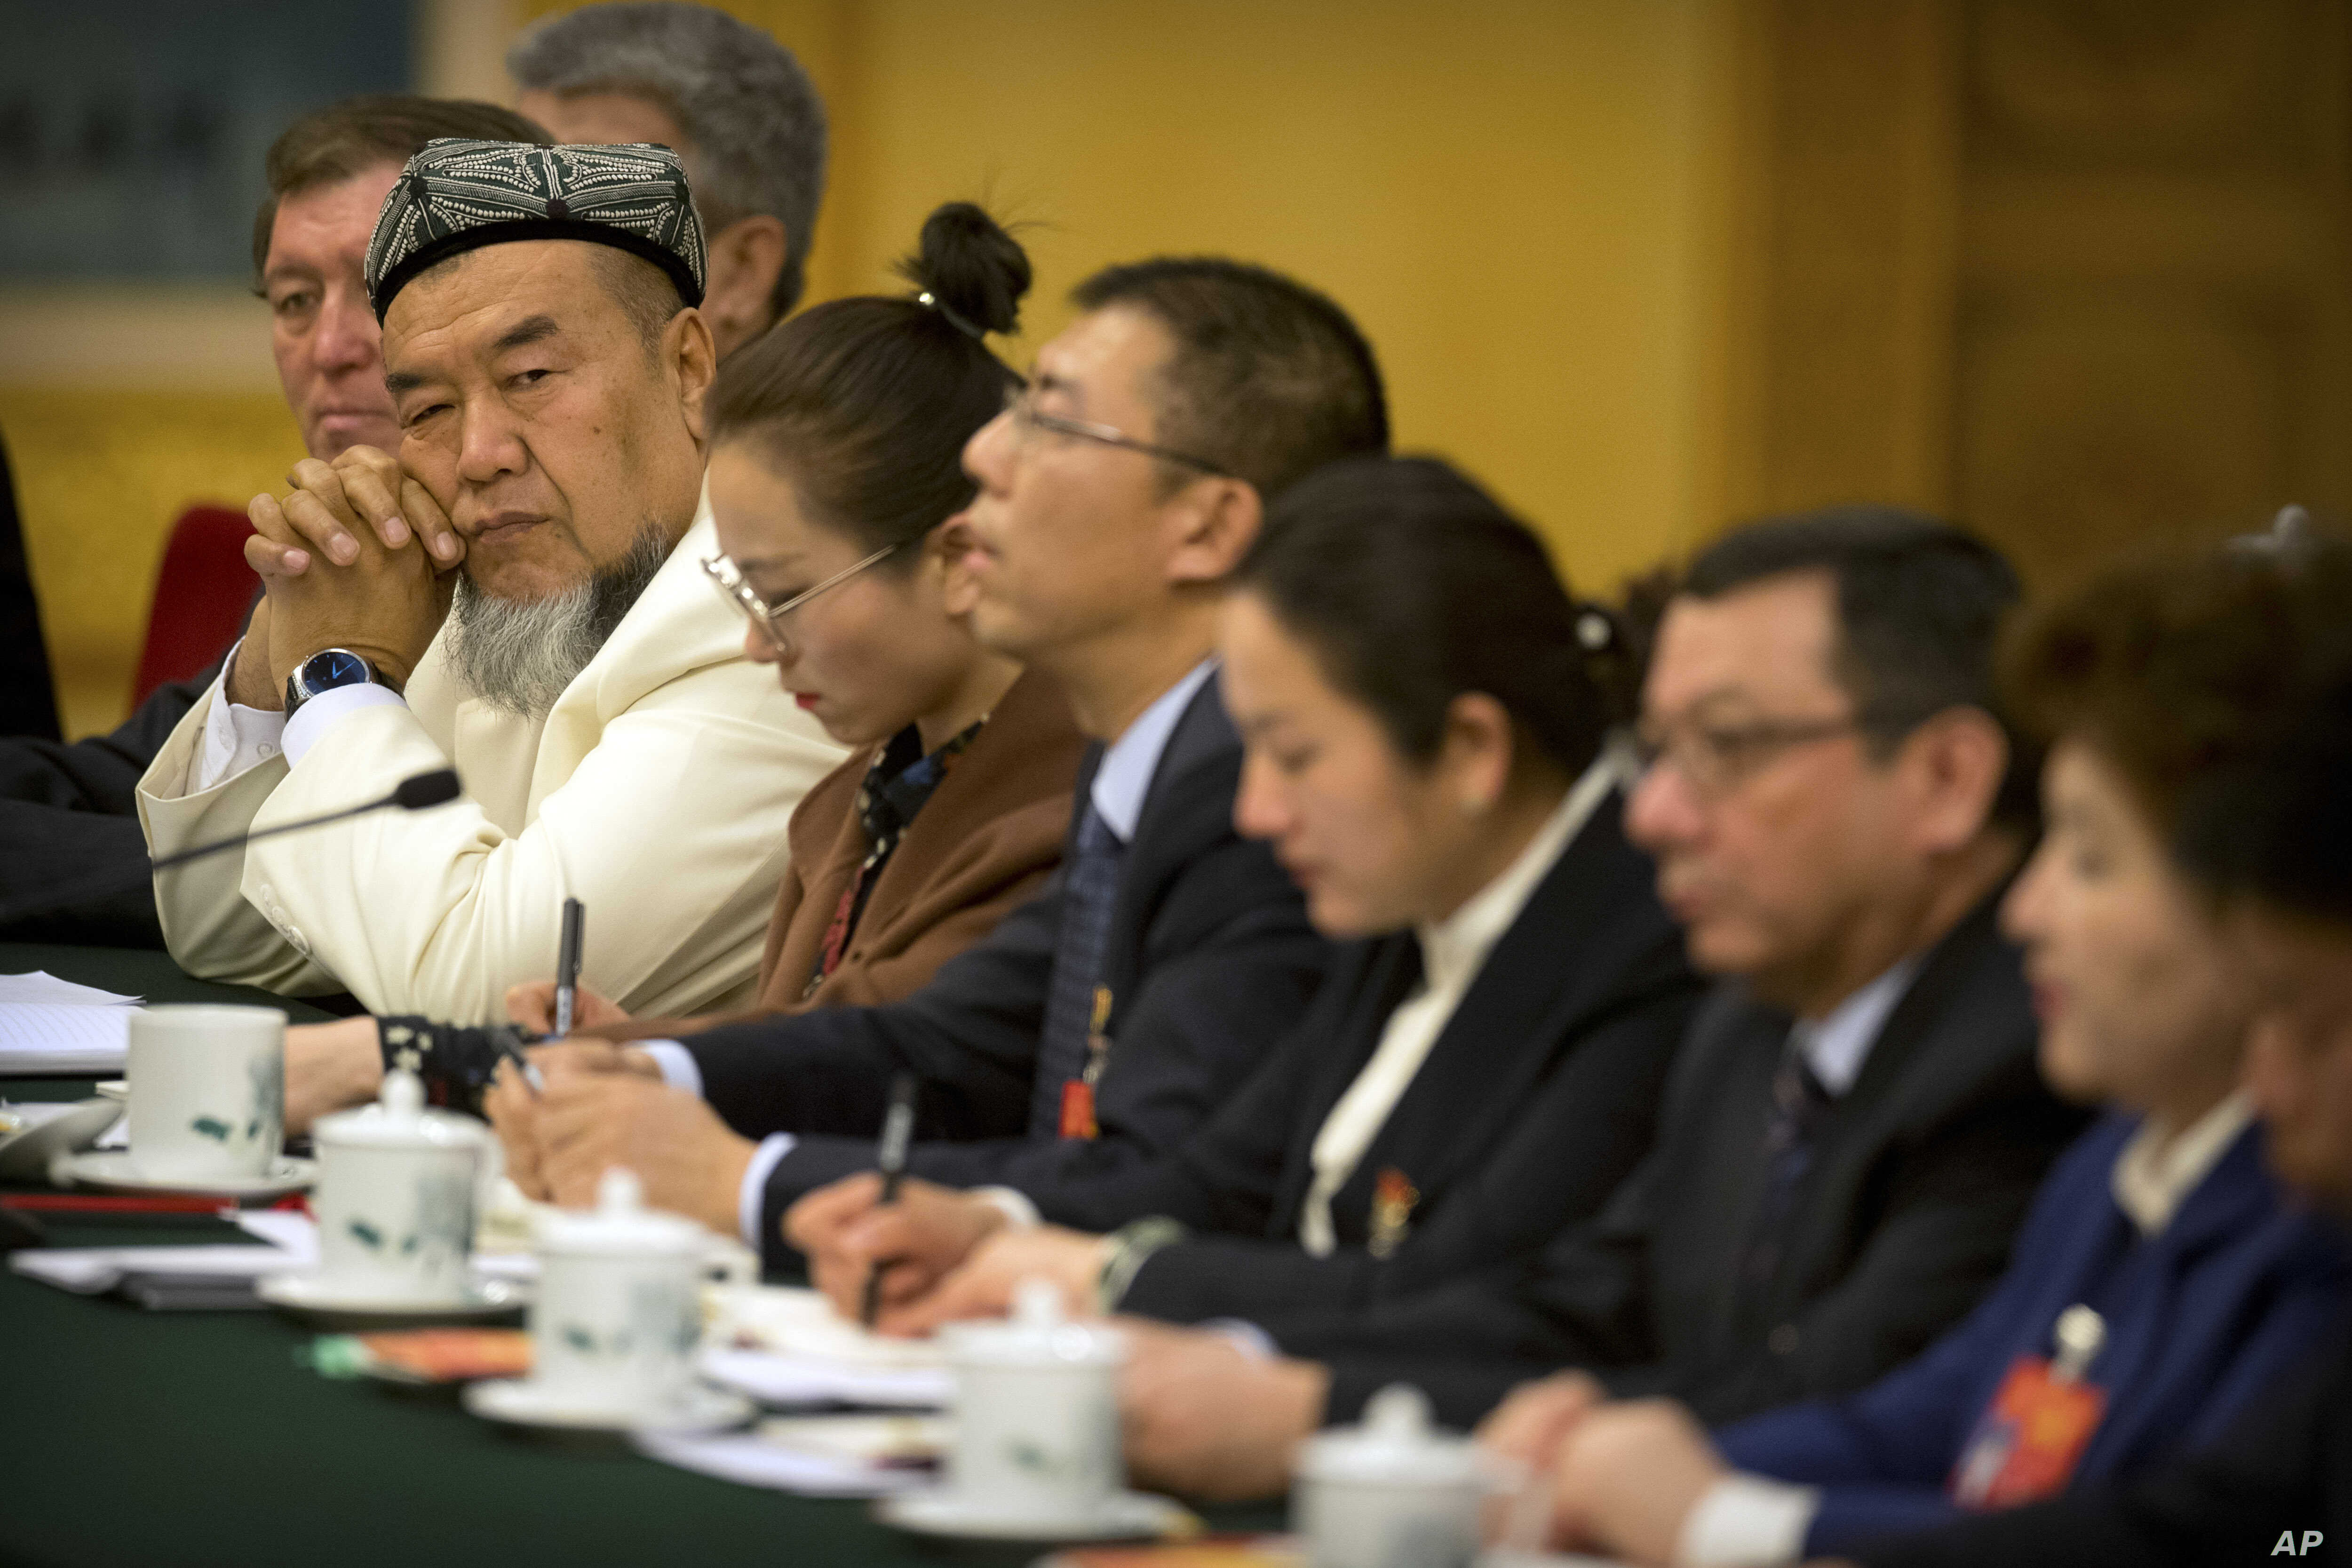 A delegate in traditional Uighur dress listens to a speaker during a group discussion meeting with delegates from China's Xinjiang Uighur Autonomous Region on the sidelines of China's National People's Congress (NPC) at the Great Hall of the People i...